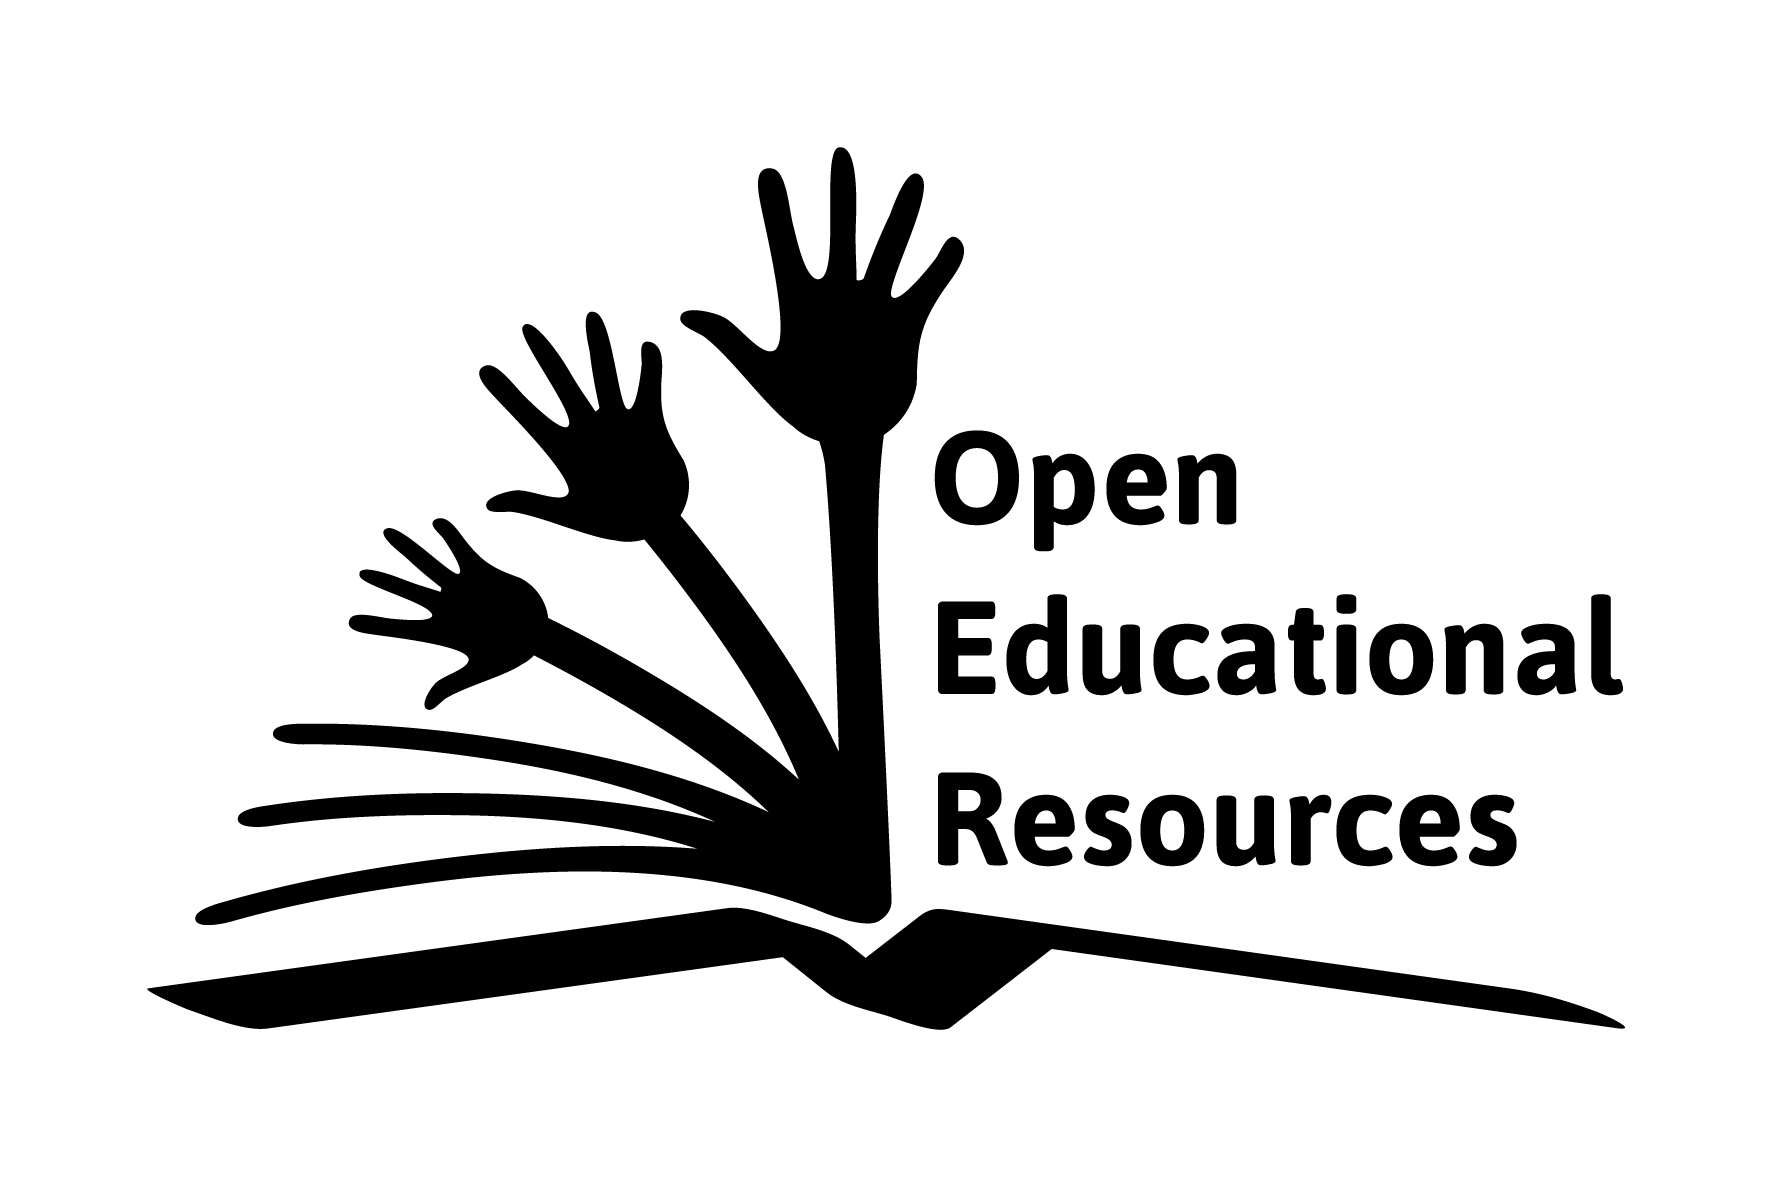 OER Global Logo by Jonathas Mello is licensed under a Creative Commons Attribution Unported 3.0 License